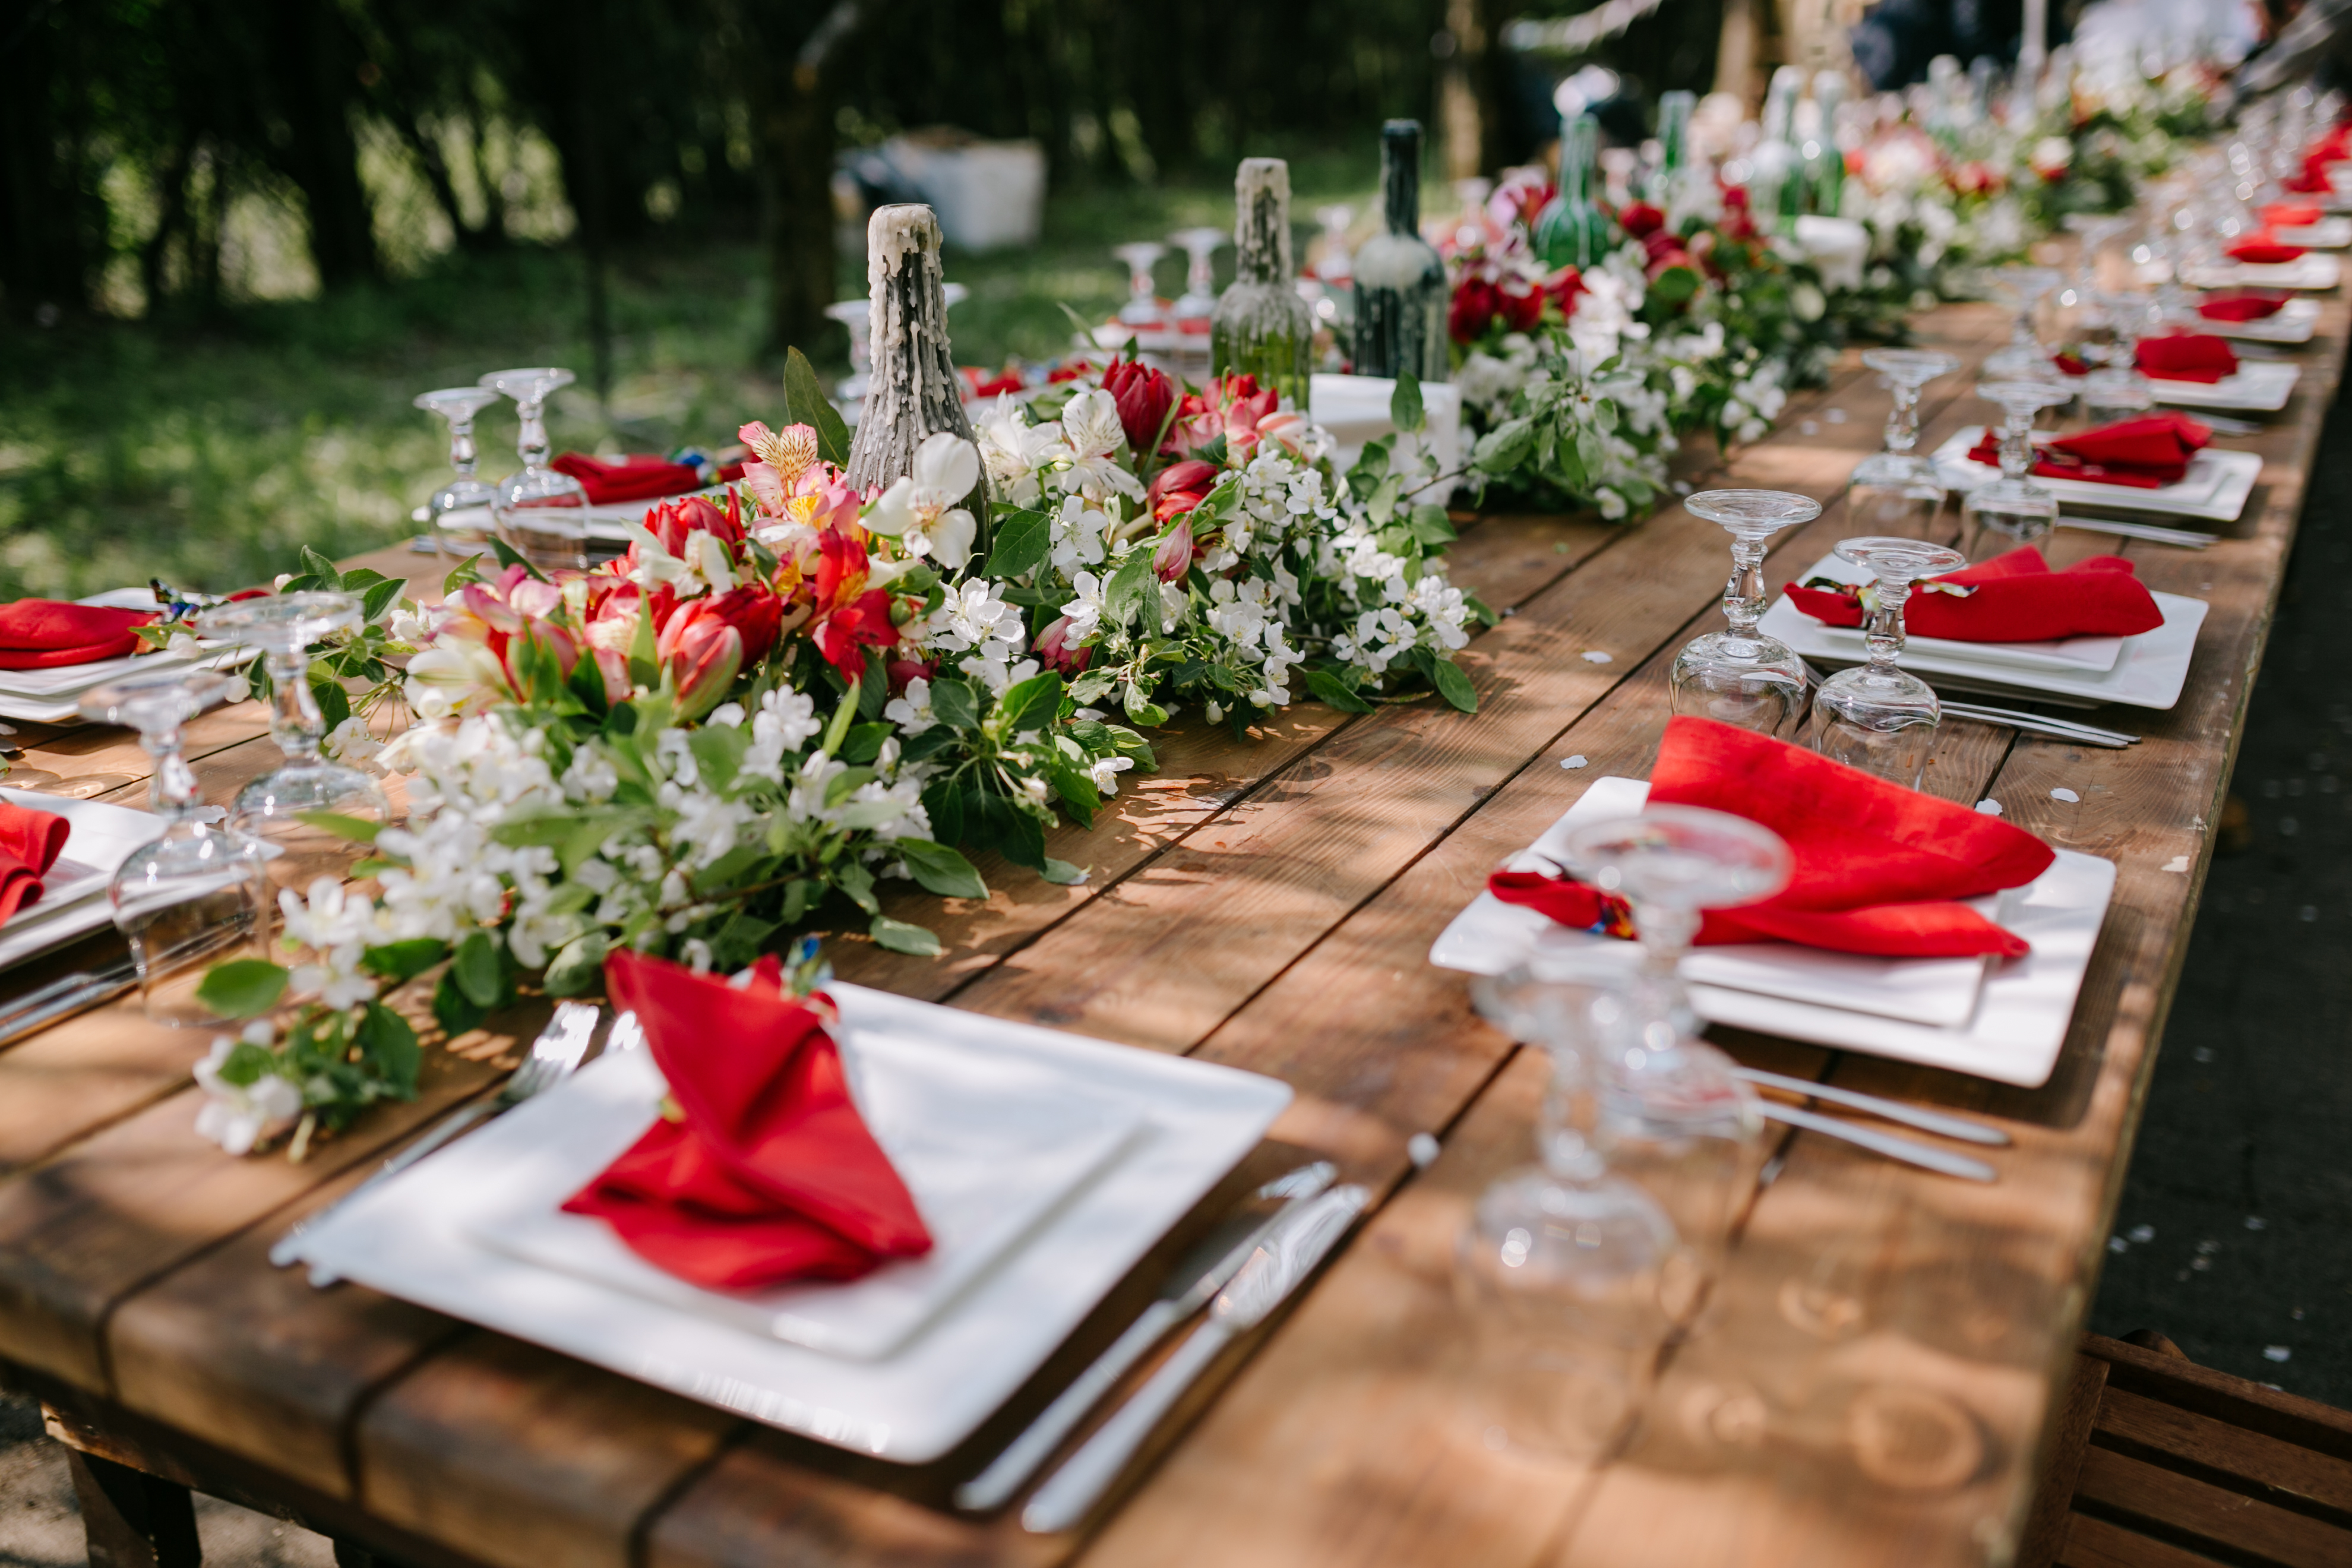 decoration-table-mariage